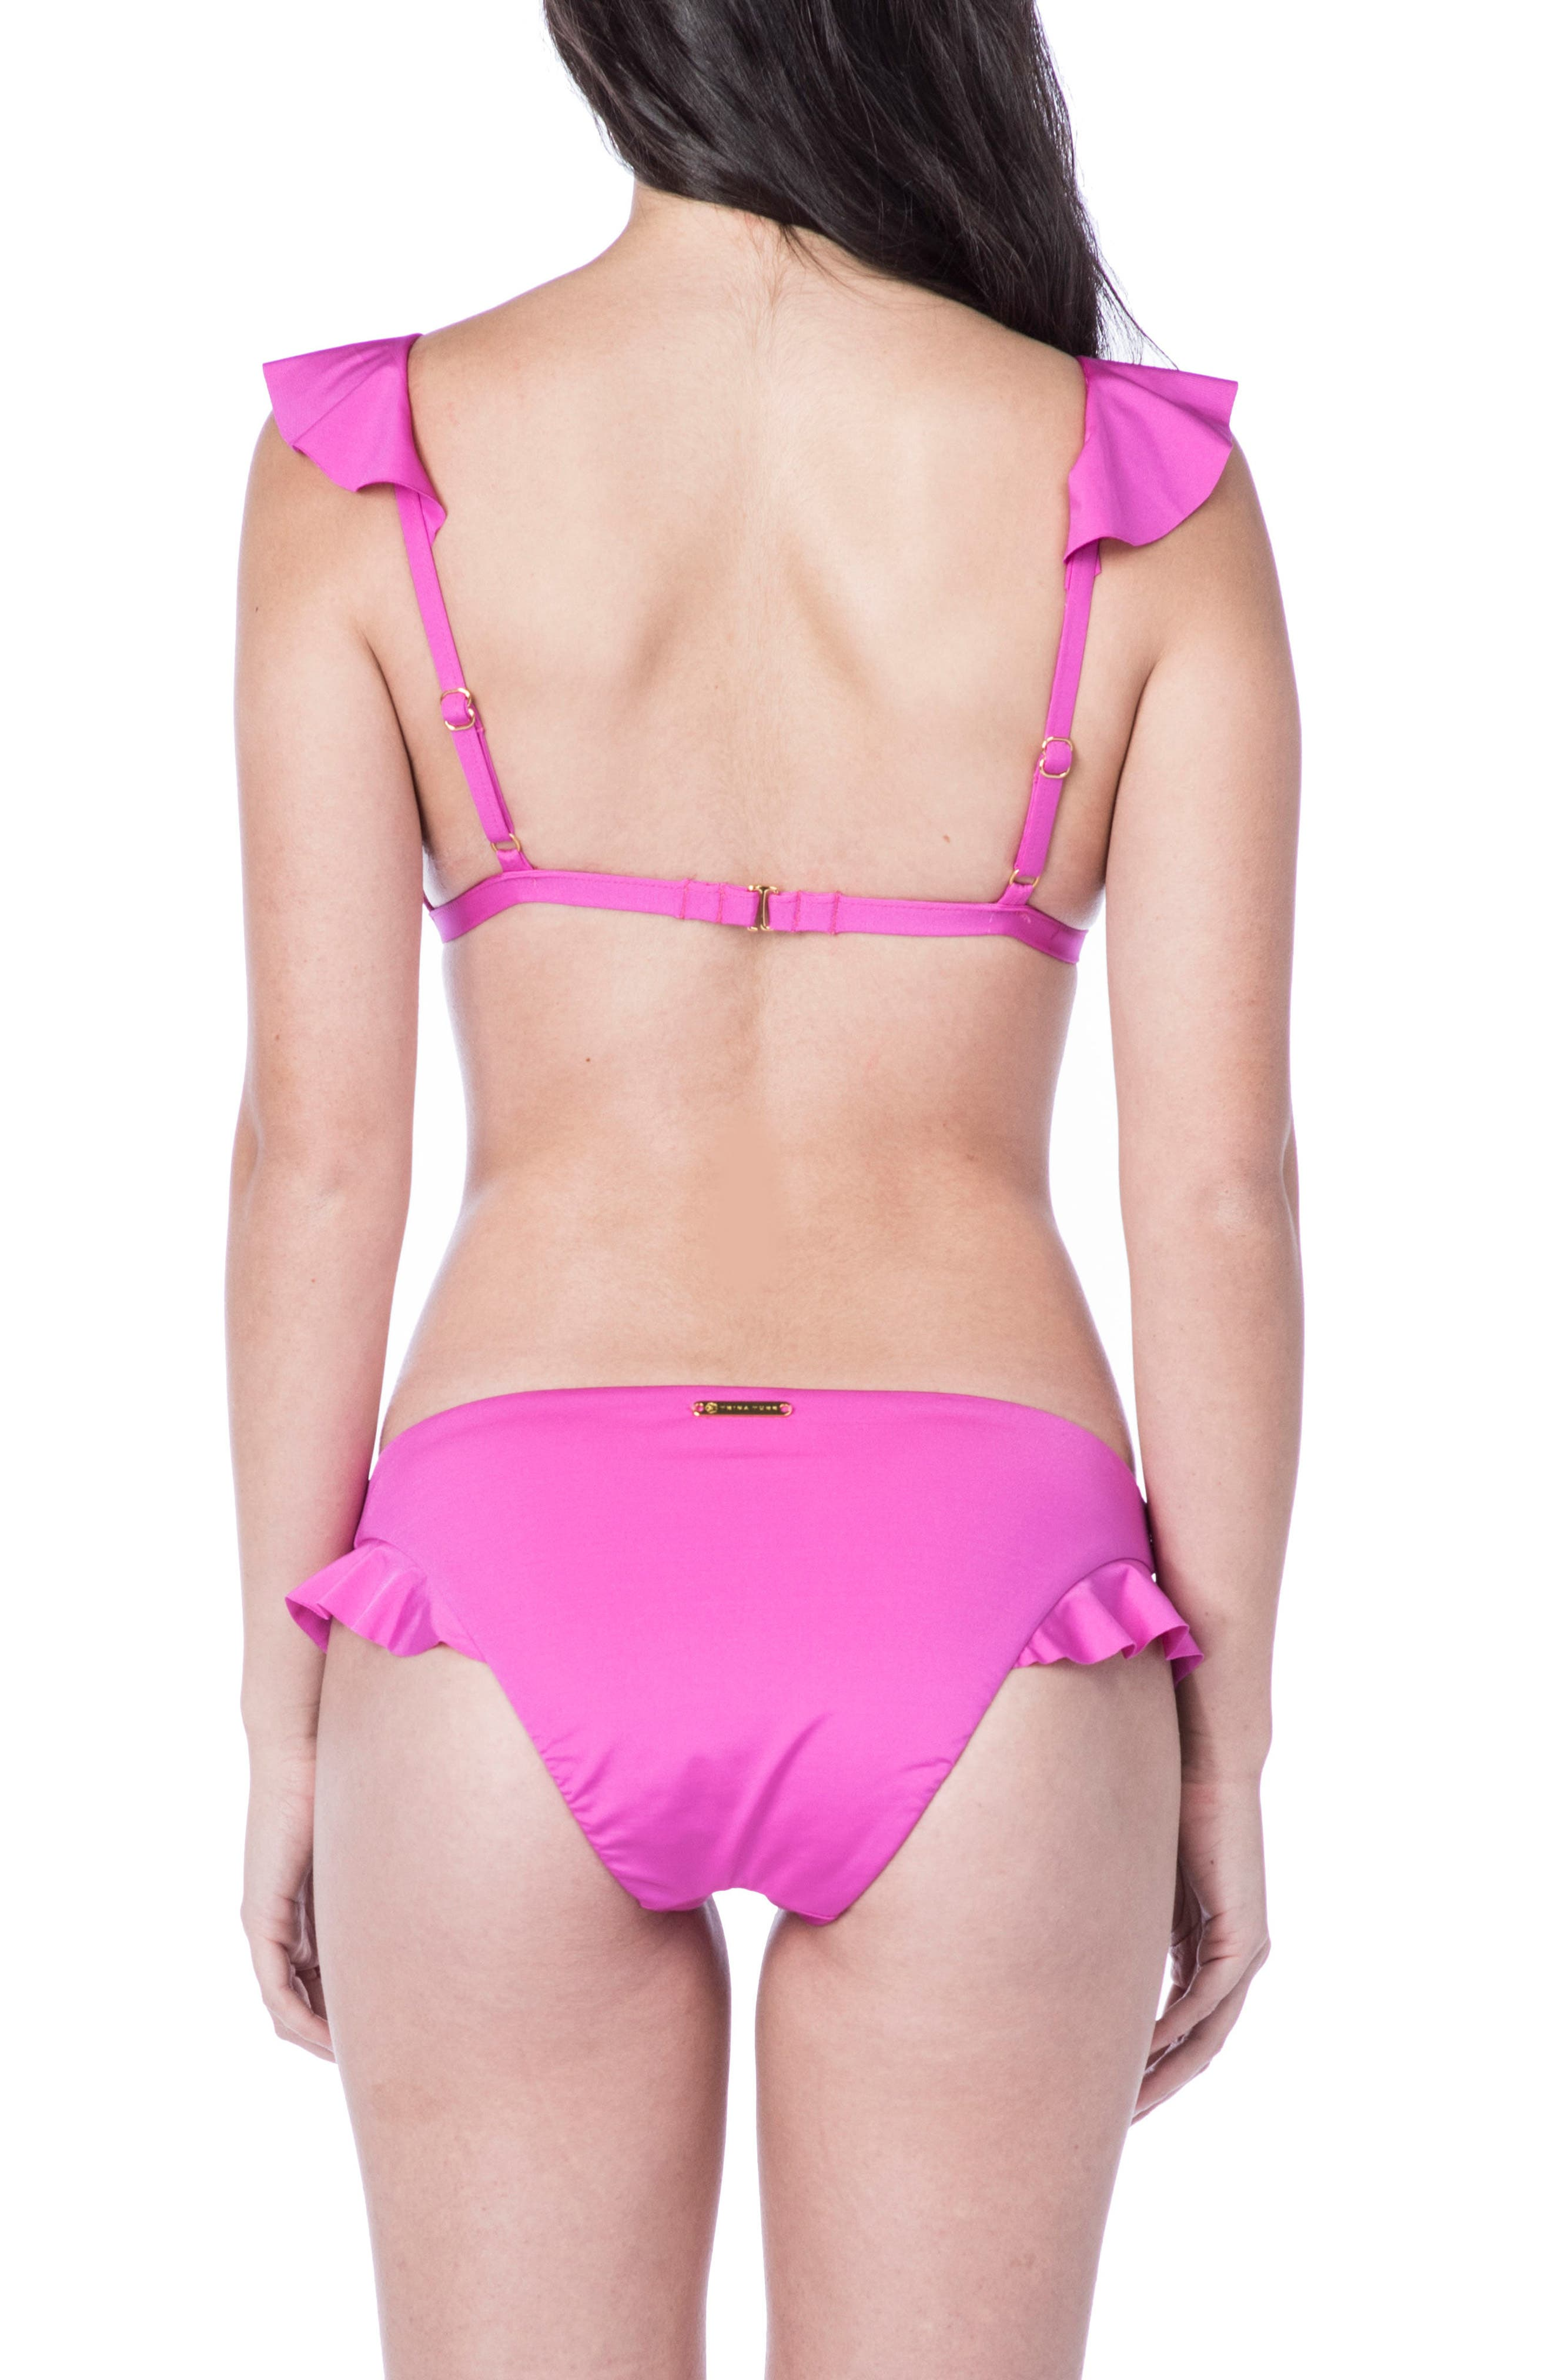 Key Solids Bikini Top,                             Alternate thumbnail 4, color,                             Shocking Pink